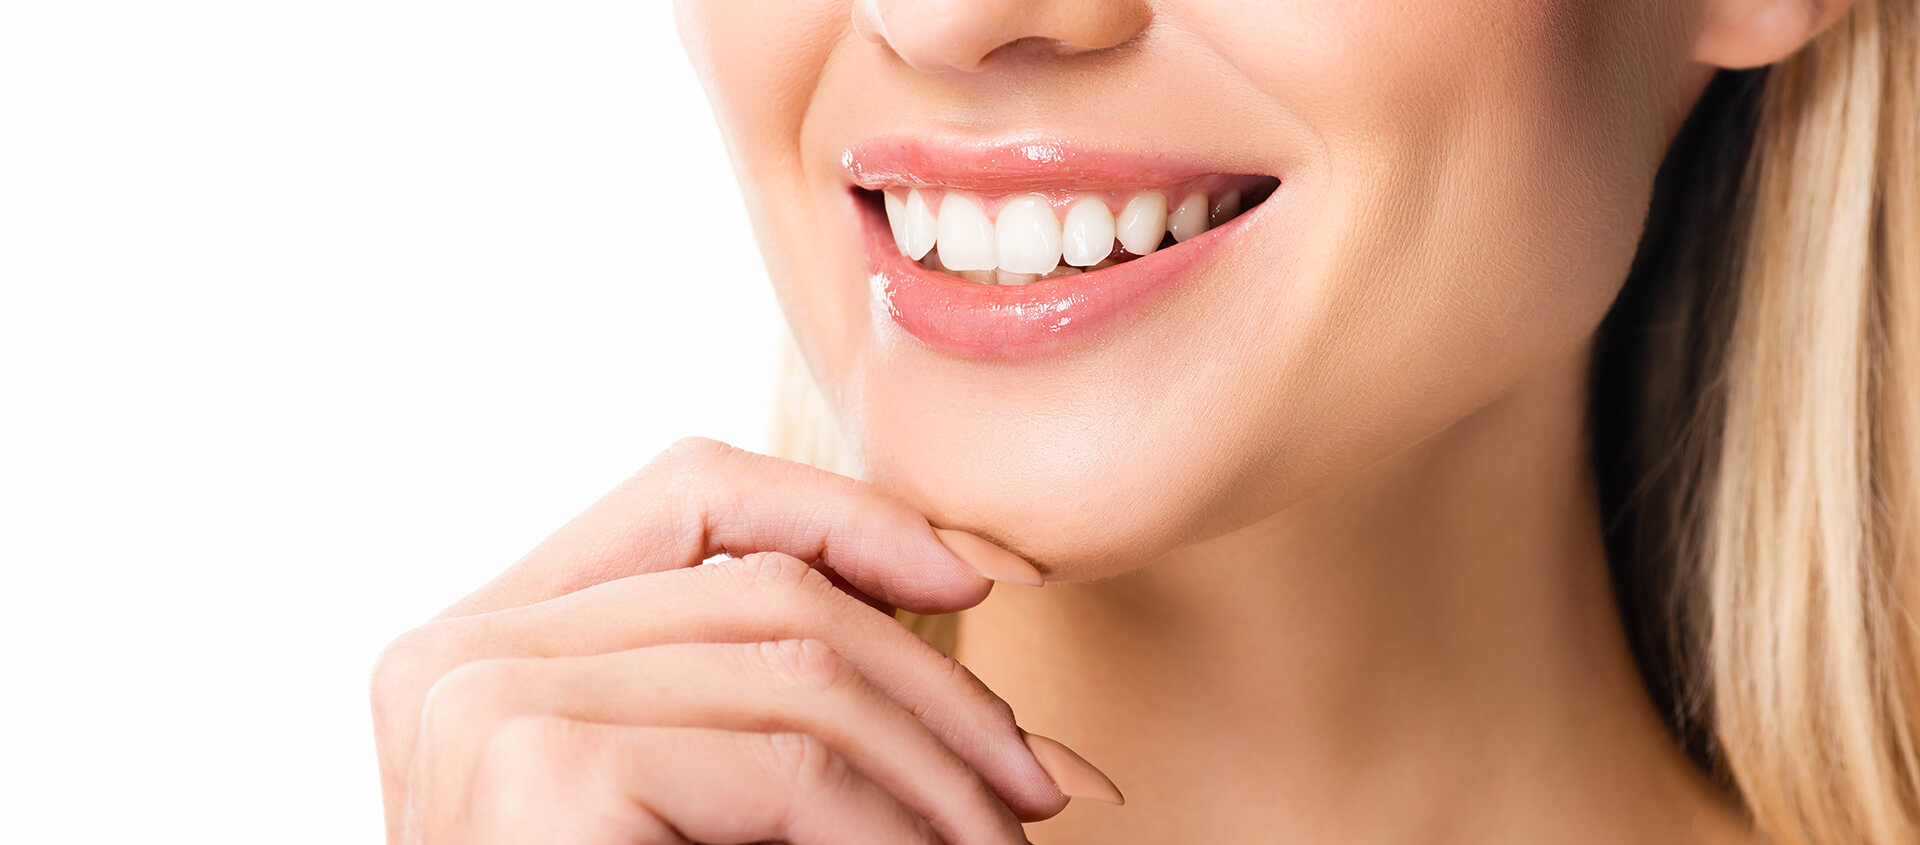 Long-lasting Teeth Whitening at Lawrence Dental Group in Kingston PA Area